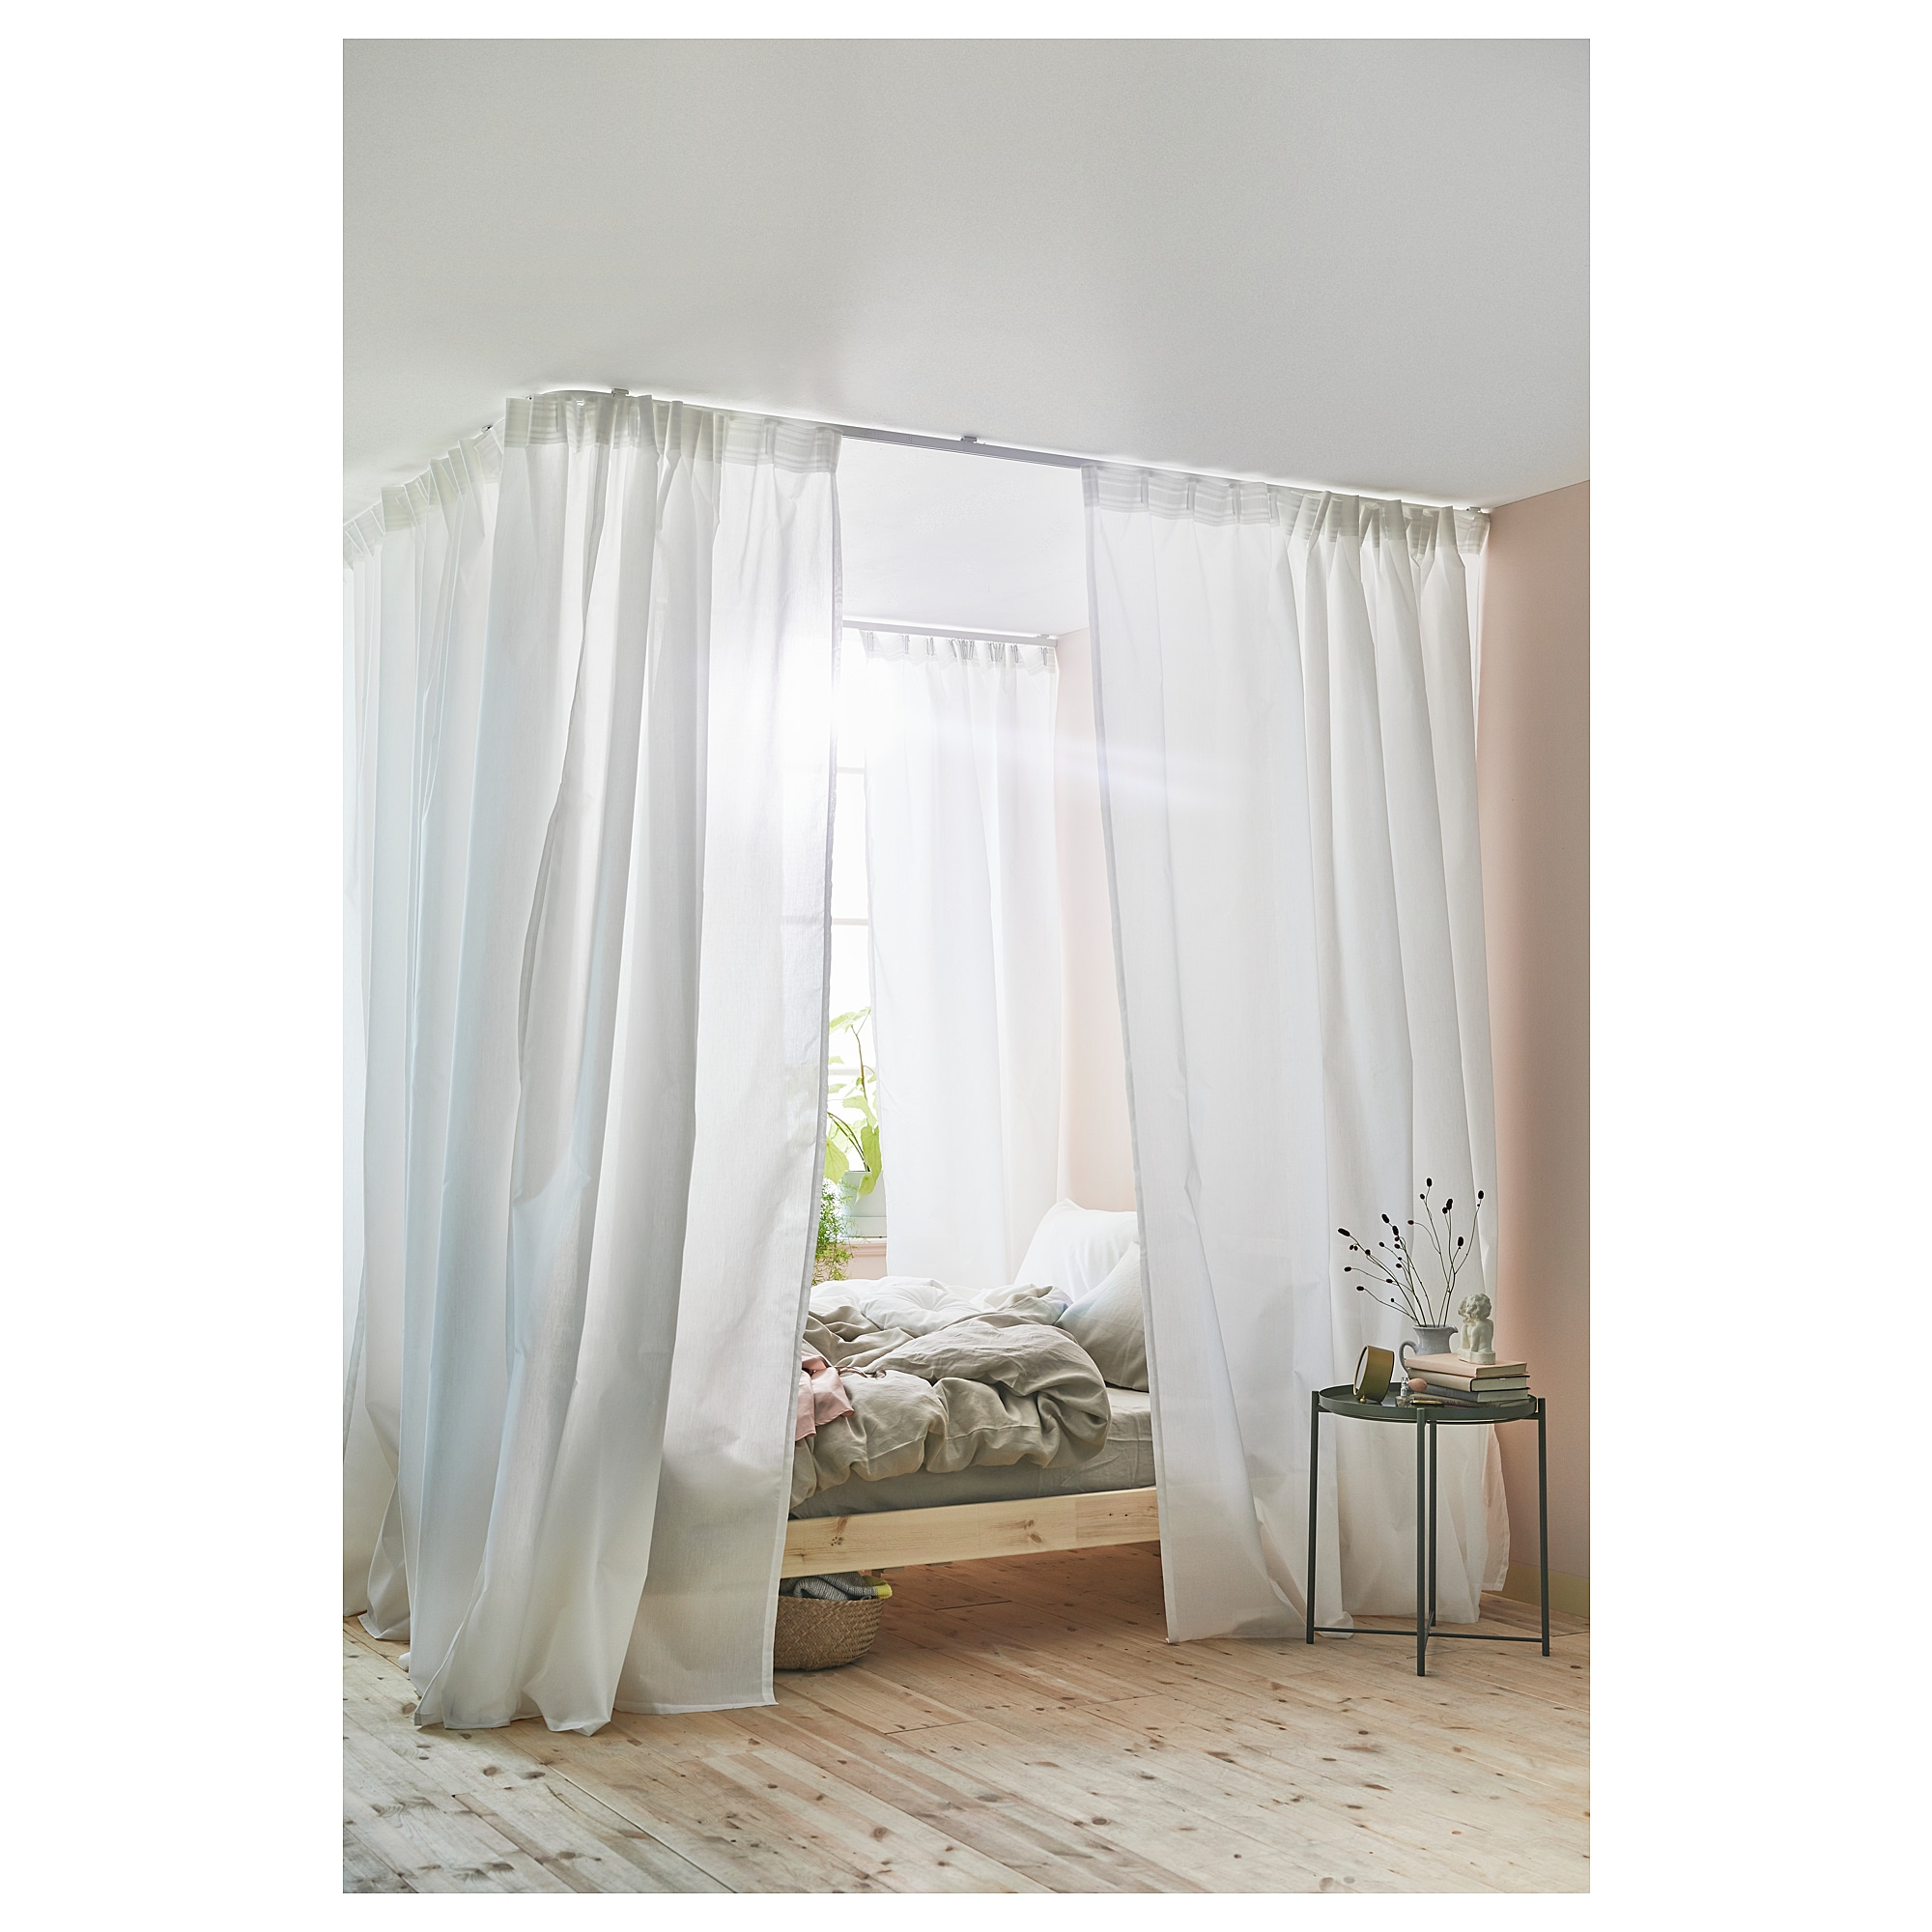 folding ideas dividers your curtain house maxi to the apply ikea divider hanging in room